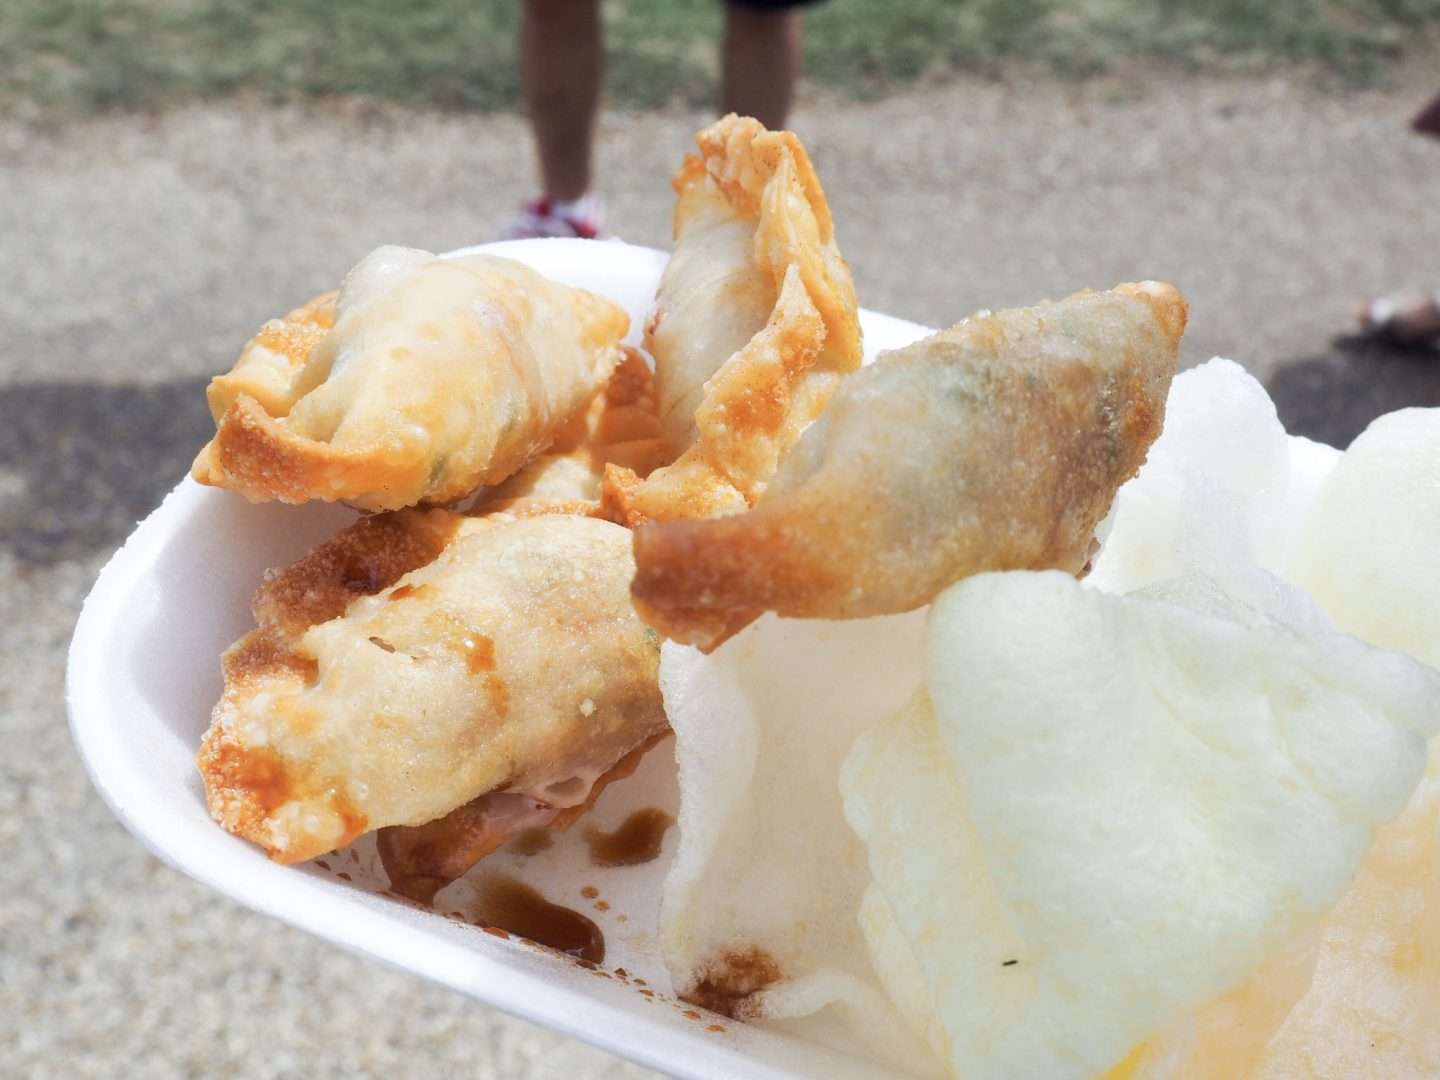 Green Cow Catering pork and chive dumplings